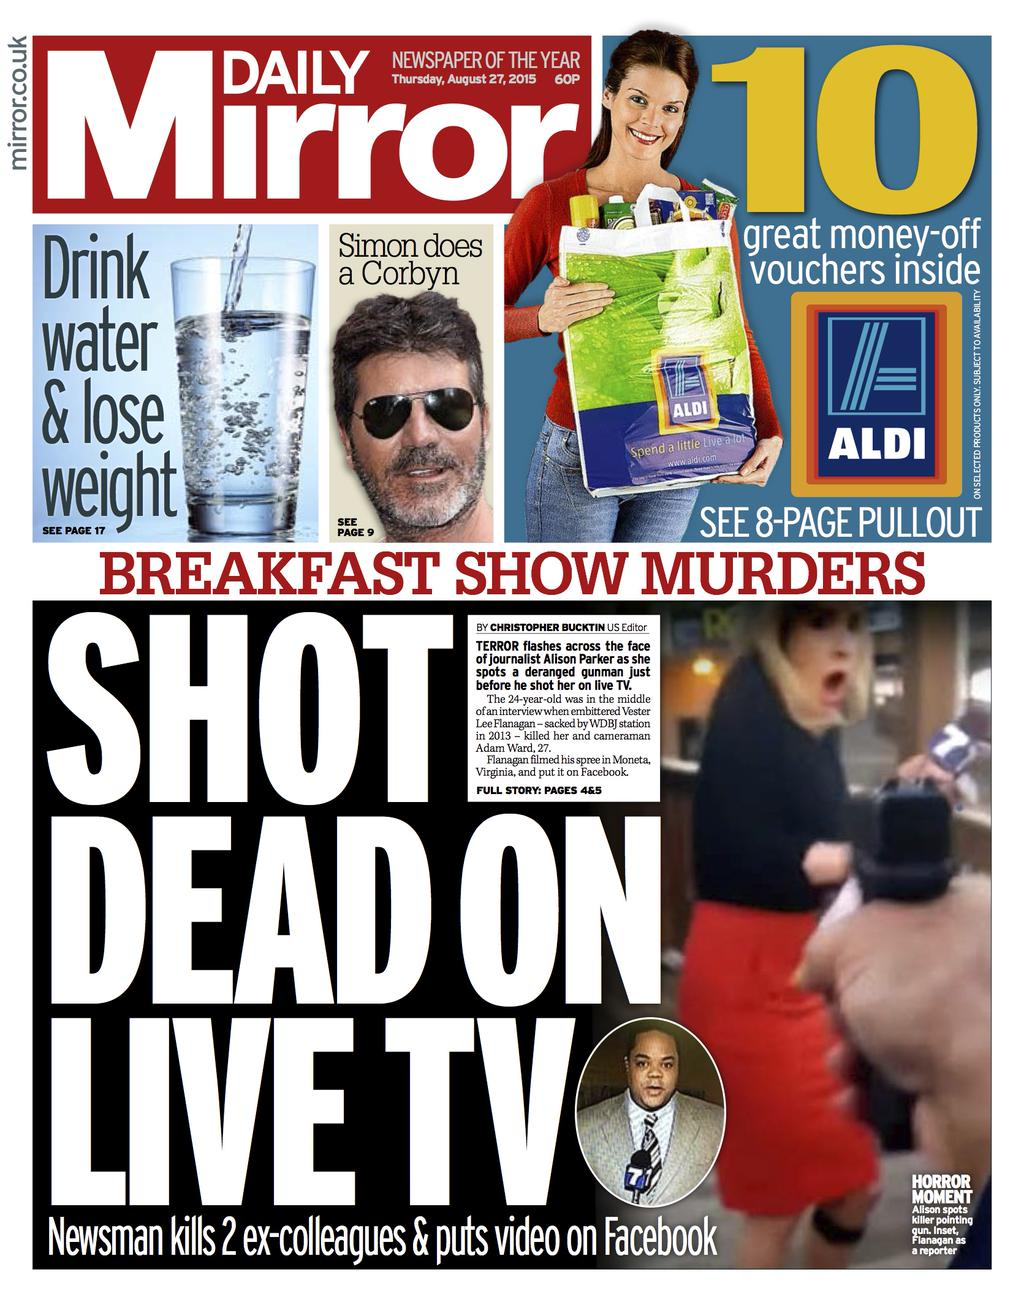 08 - Daily Mirror -- Bad